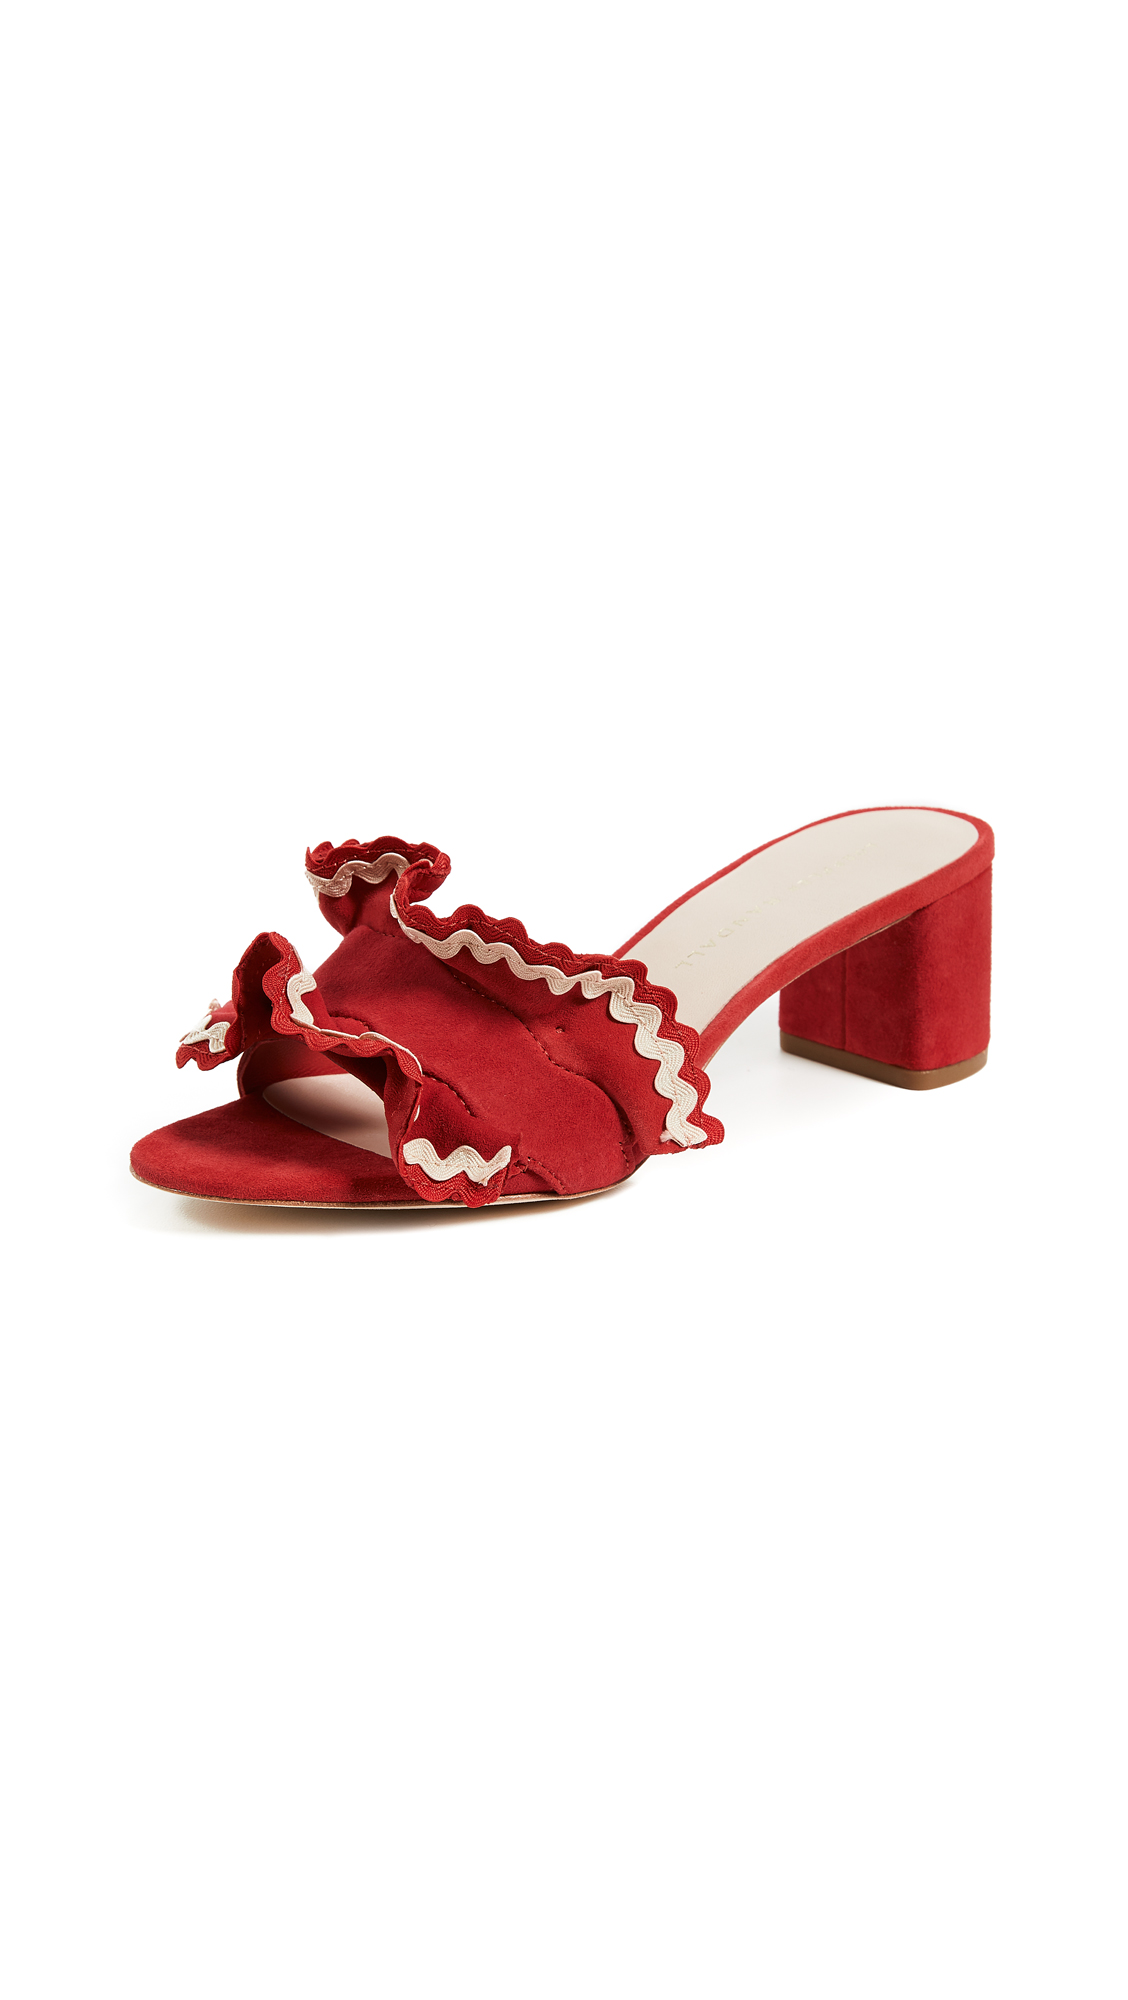 Loeffler Randall Vera City Slide Sandals - Bright Red/Natural Brina